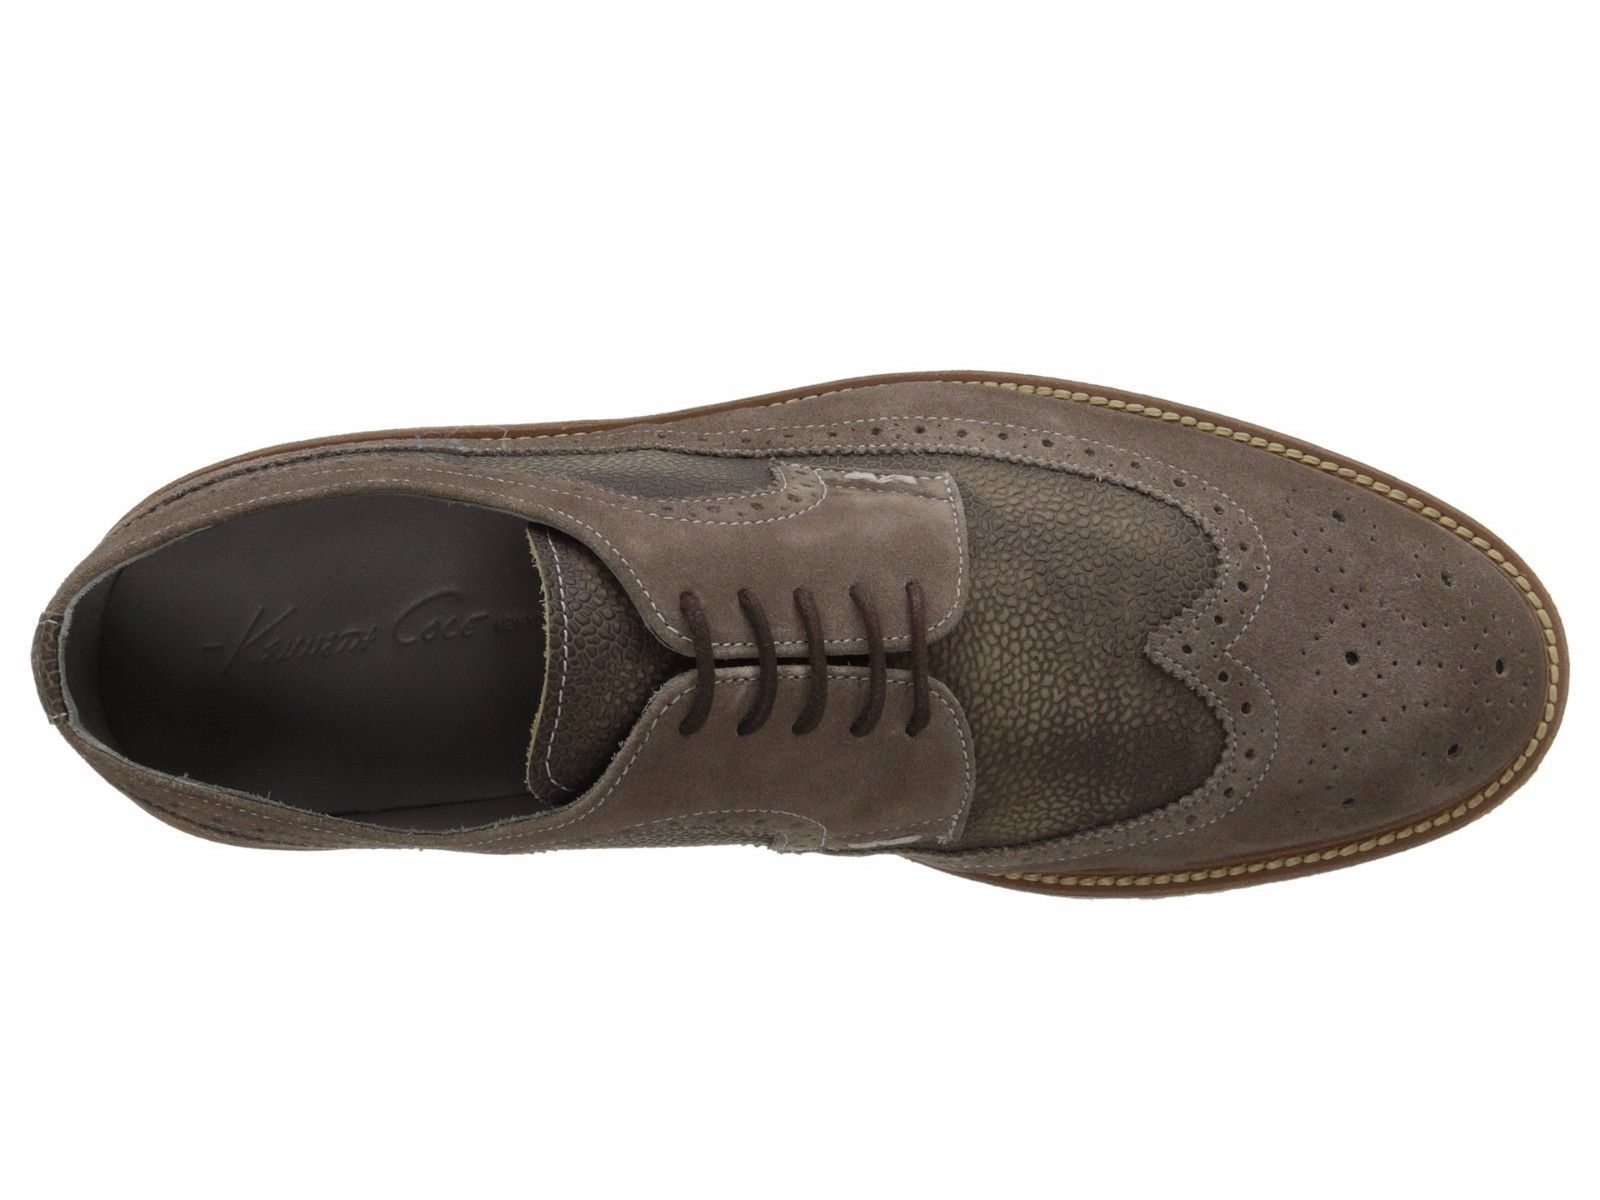 Size 7.5 KENNETH COLE (Suede/Leather) Men's Shoe! Reg$188 Sale$89.99 LastPair!